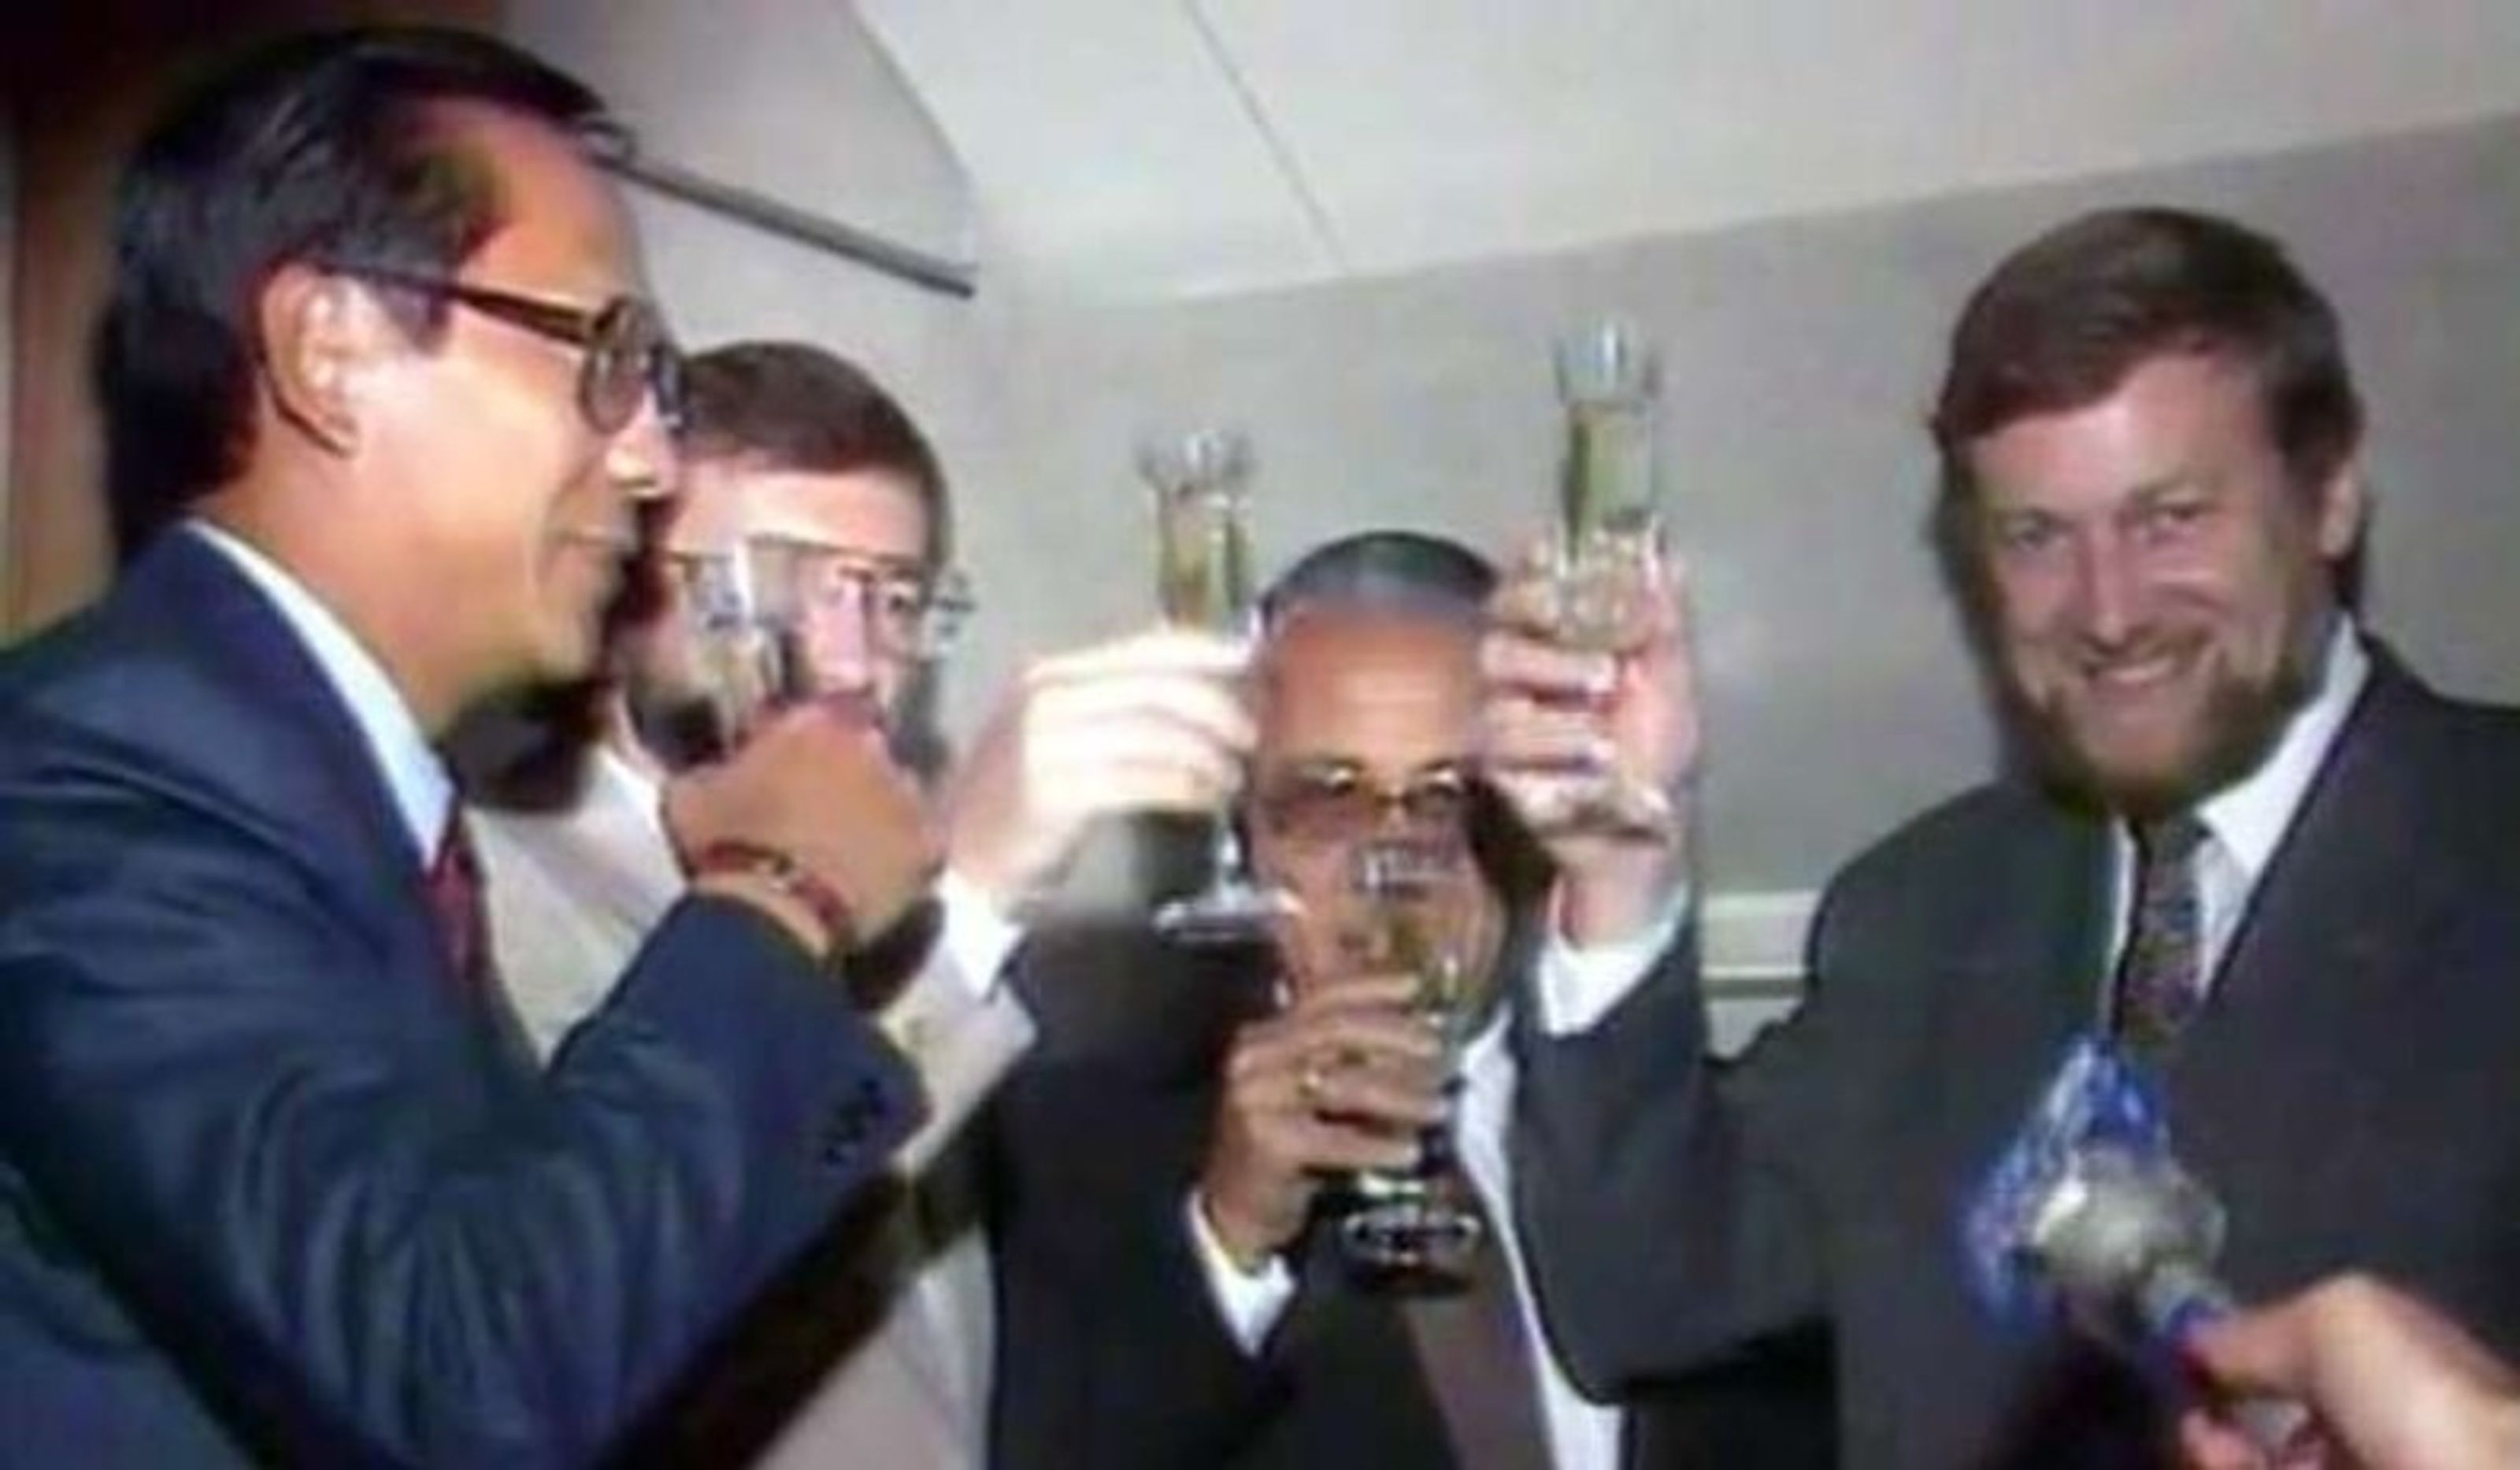 Australia's Gareth Evans (right) and Indonesia's Ali Alatas (beside him) toast the signing of the Timor Gap oil treaty